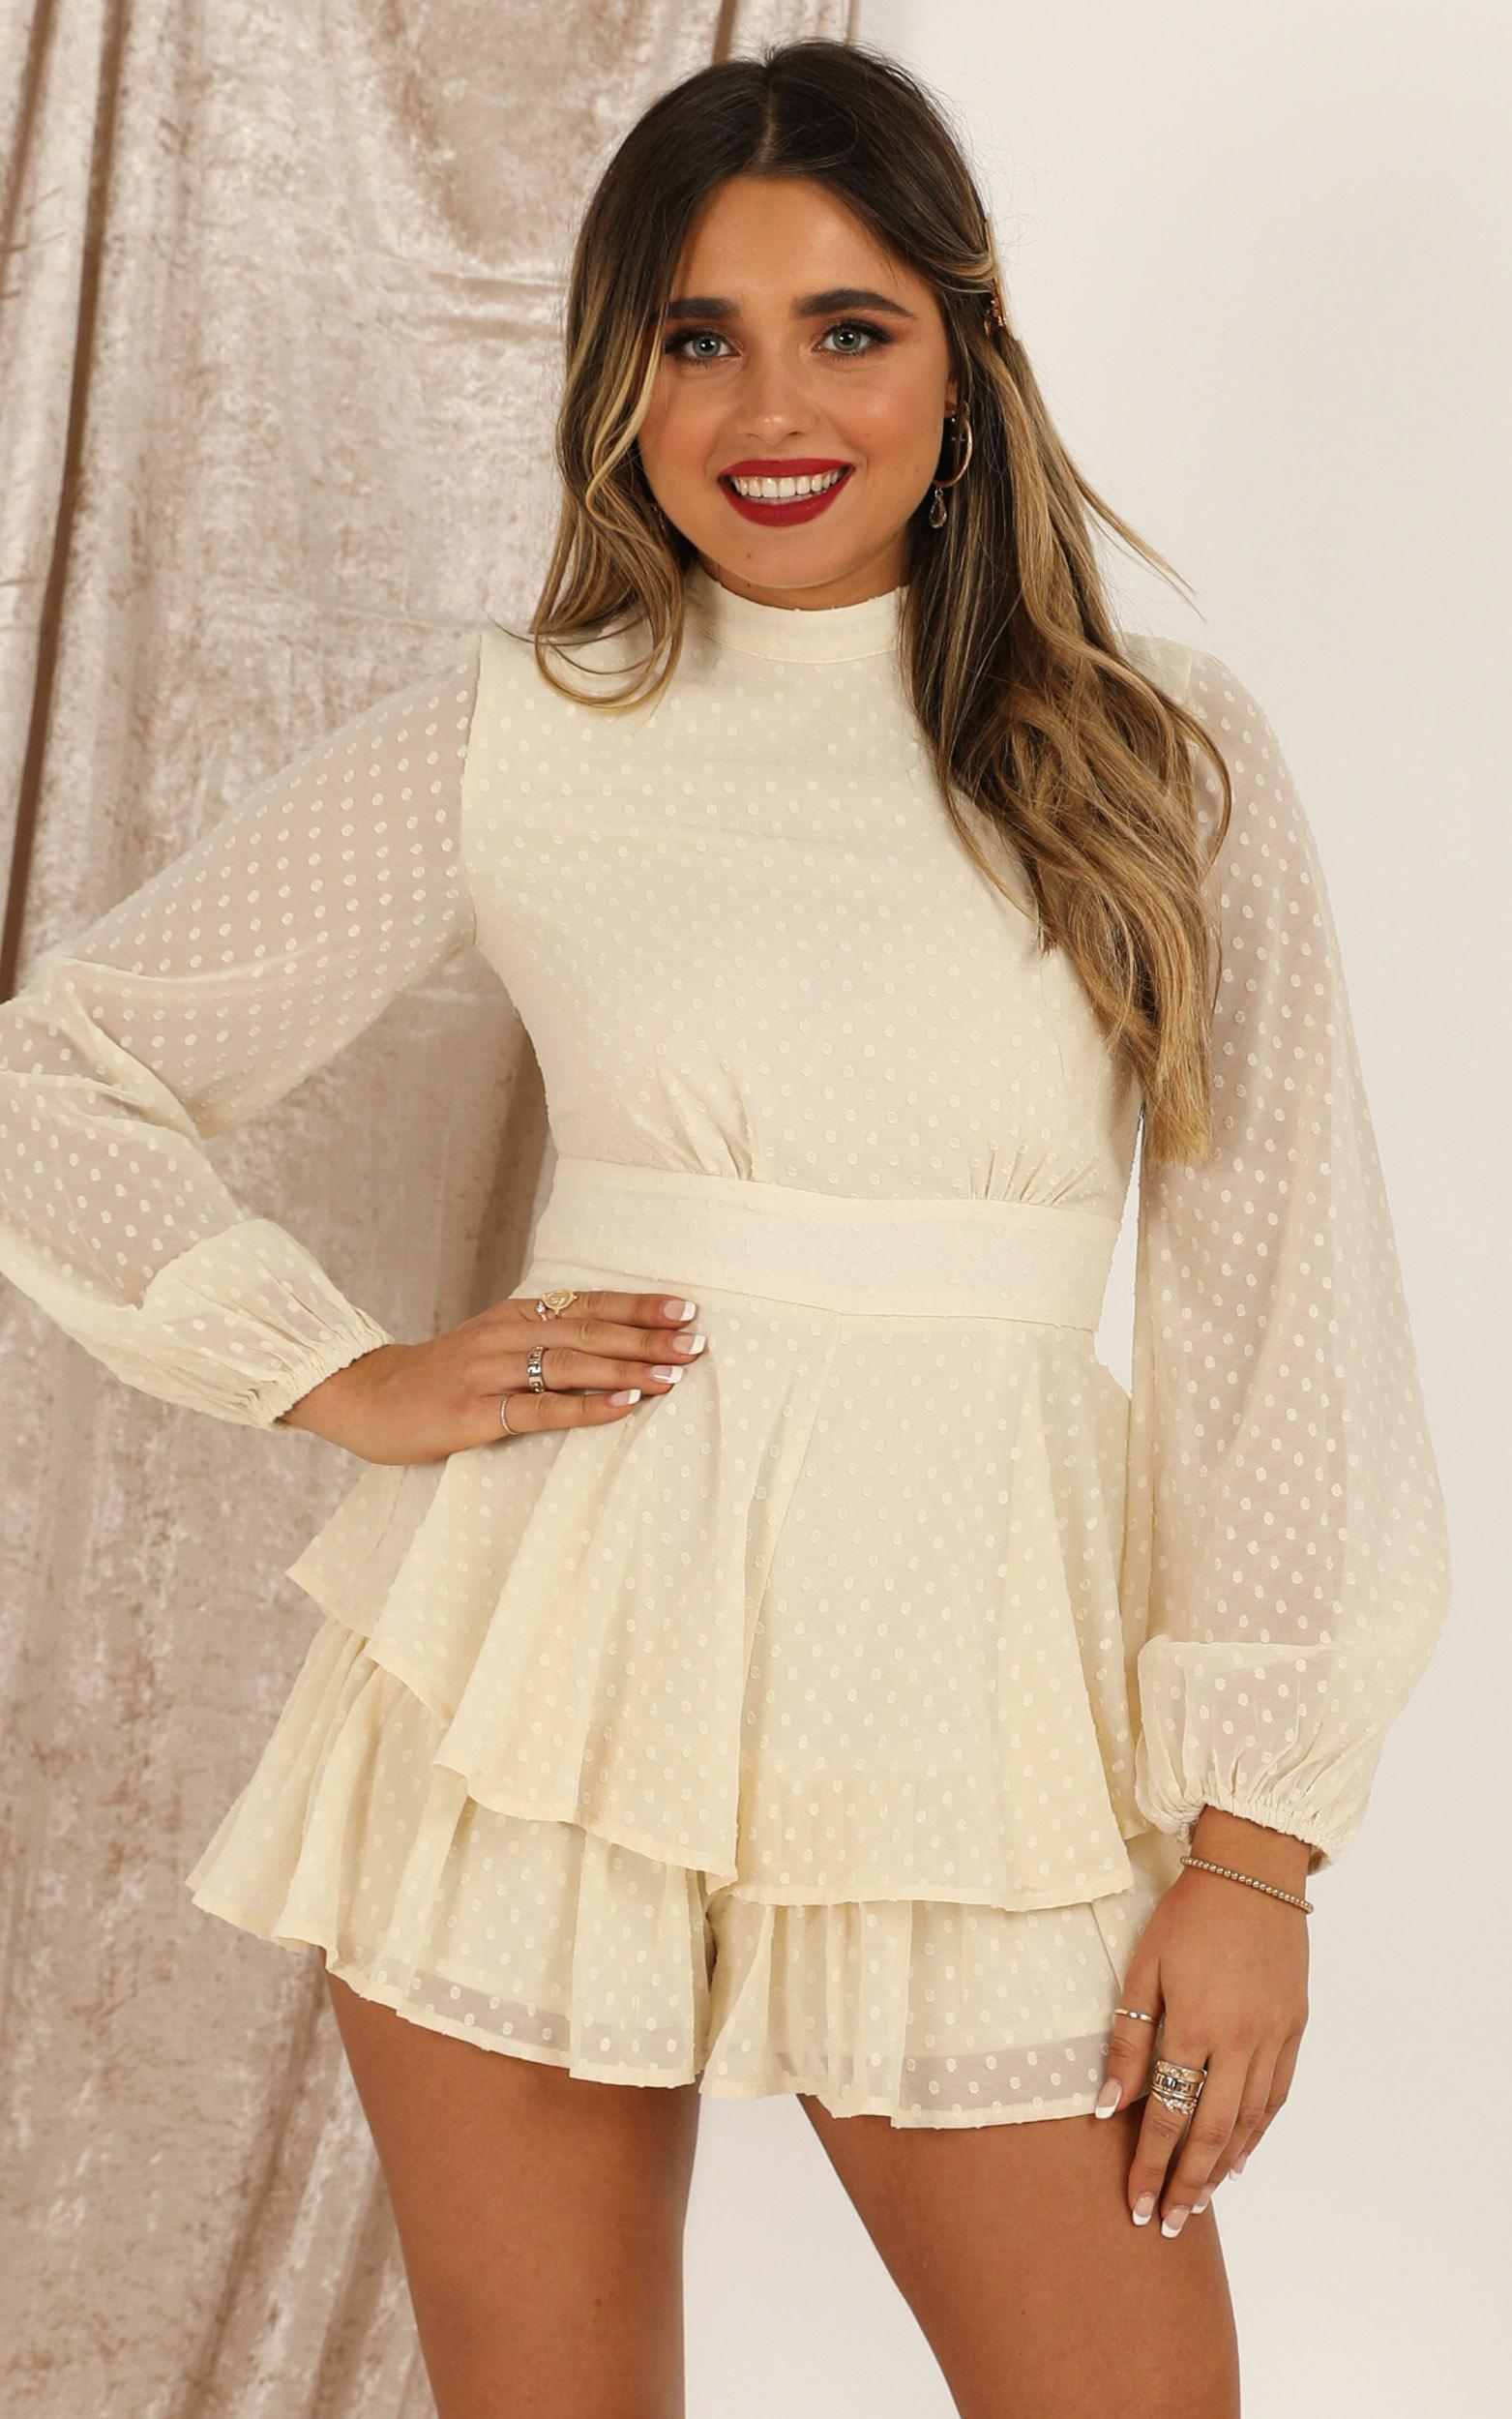 Bottom Of Your Heart Playsuit in cream - 20 (XXXXL), Cream, hi-res image number null